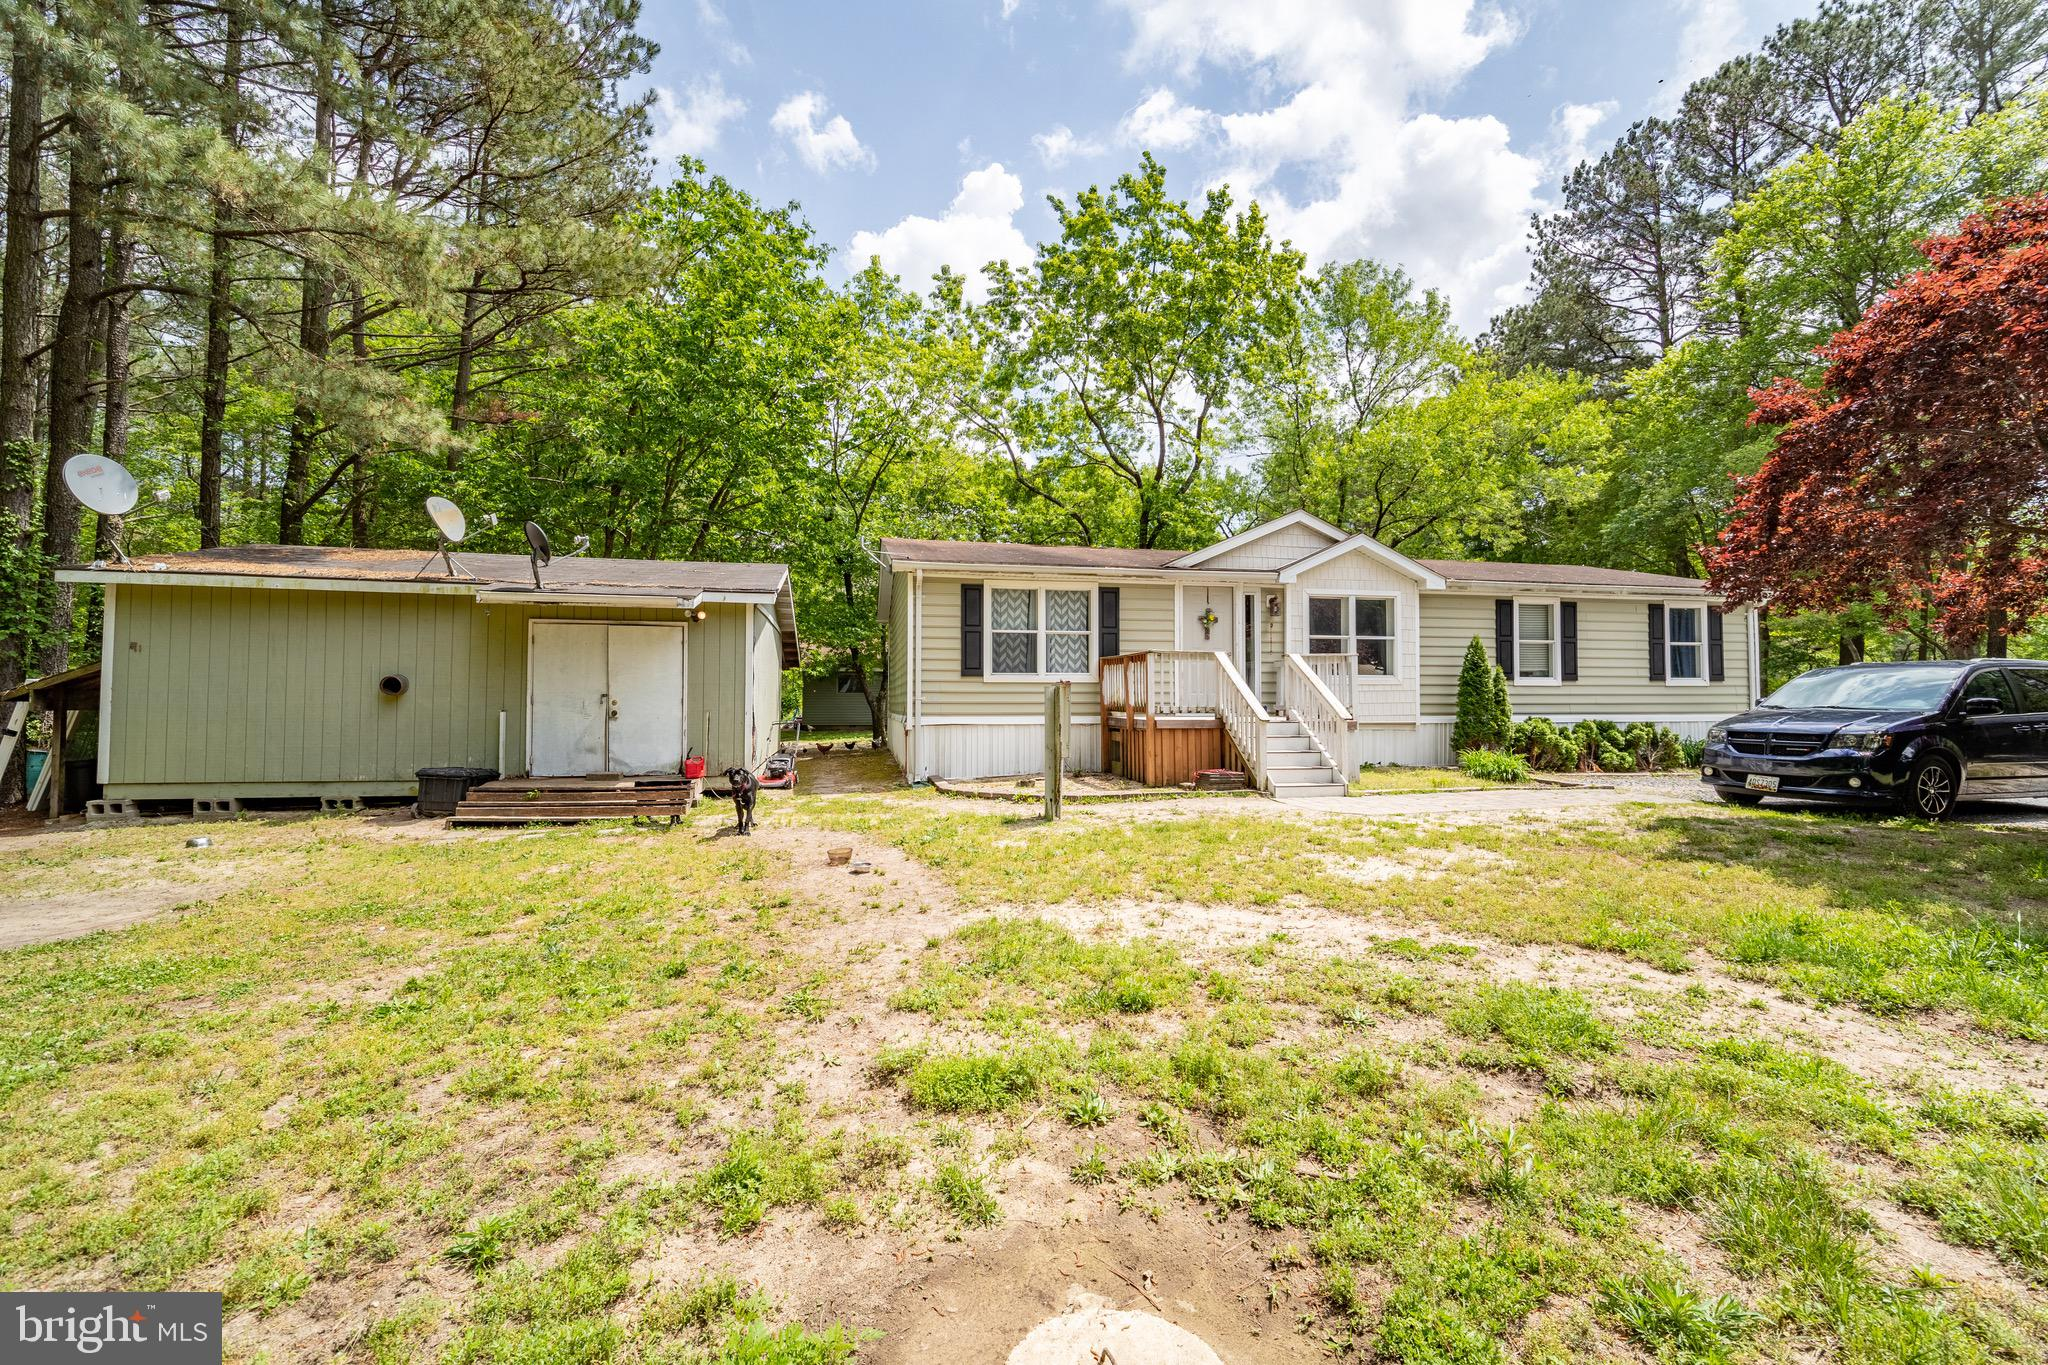 5313 SIXTY FOOT ROAD, PITTSVILLE, MD 21850